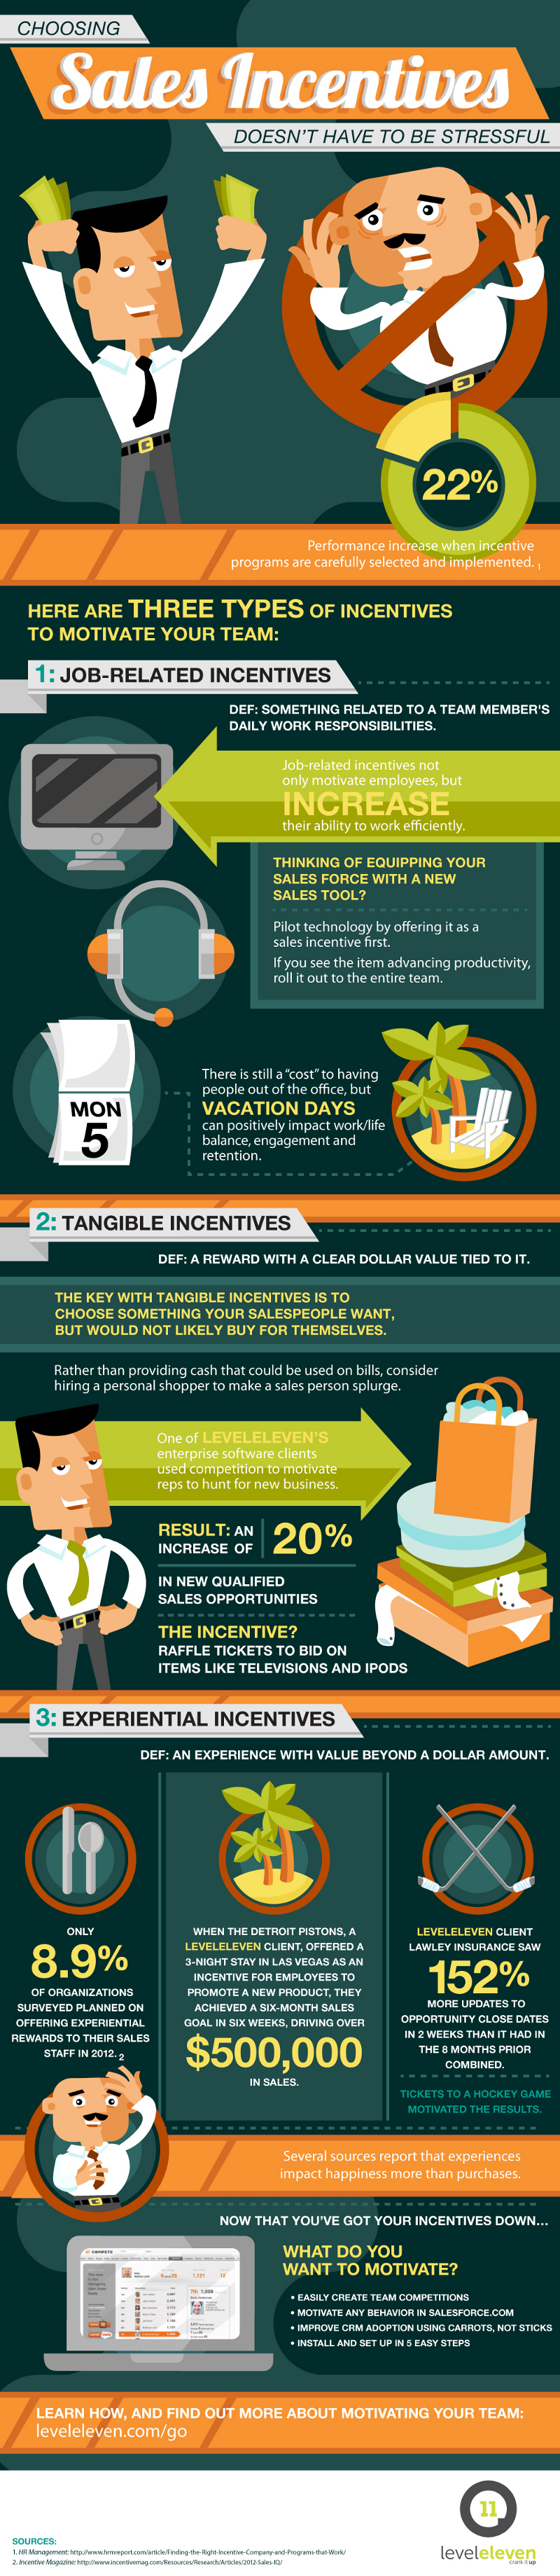 Types of Sales Incentives 33 Catchy Sales Contest Names